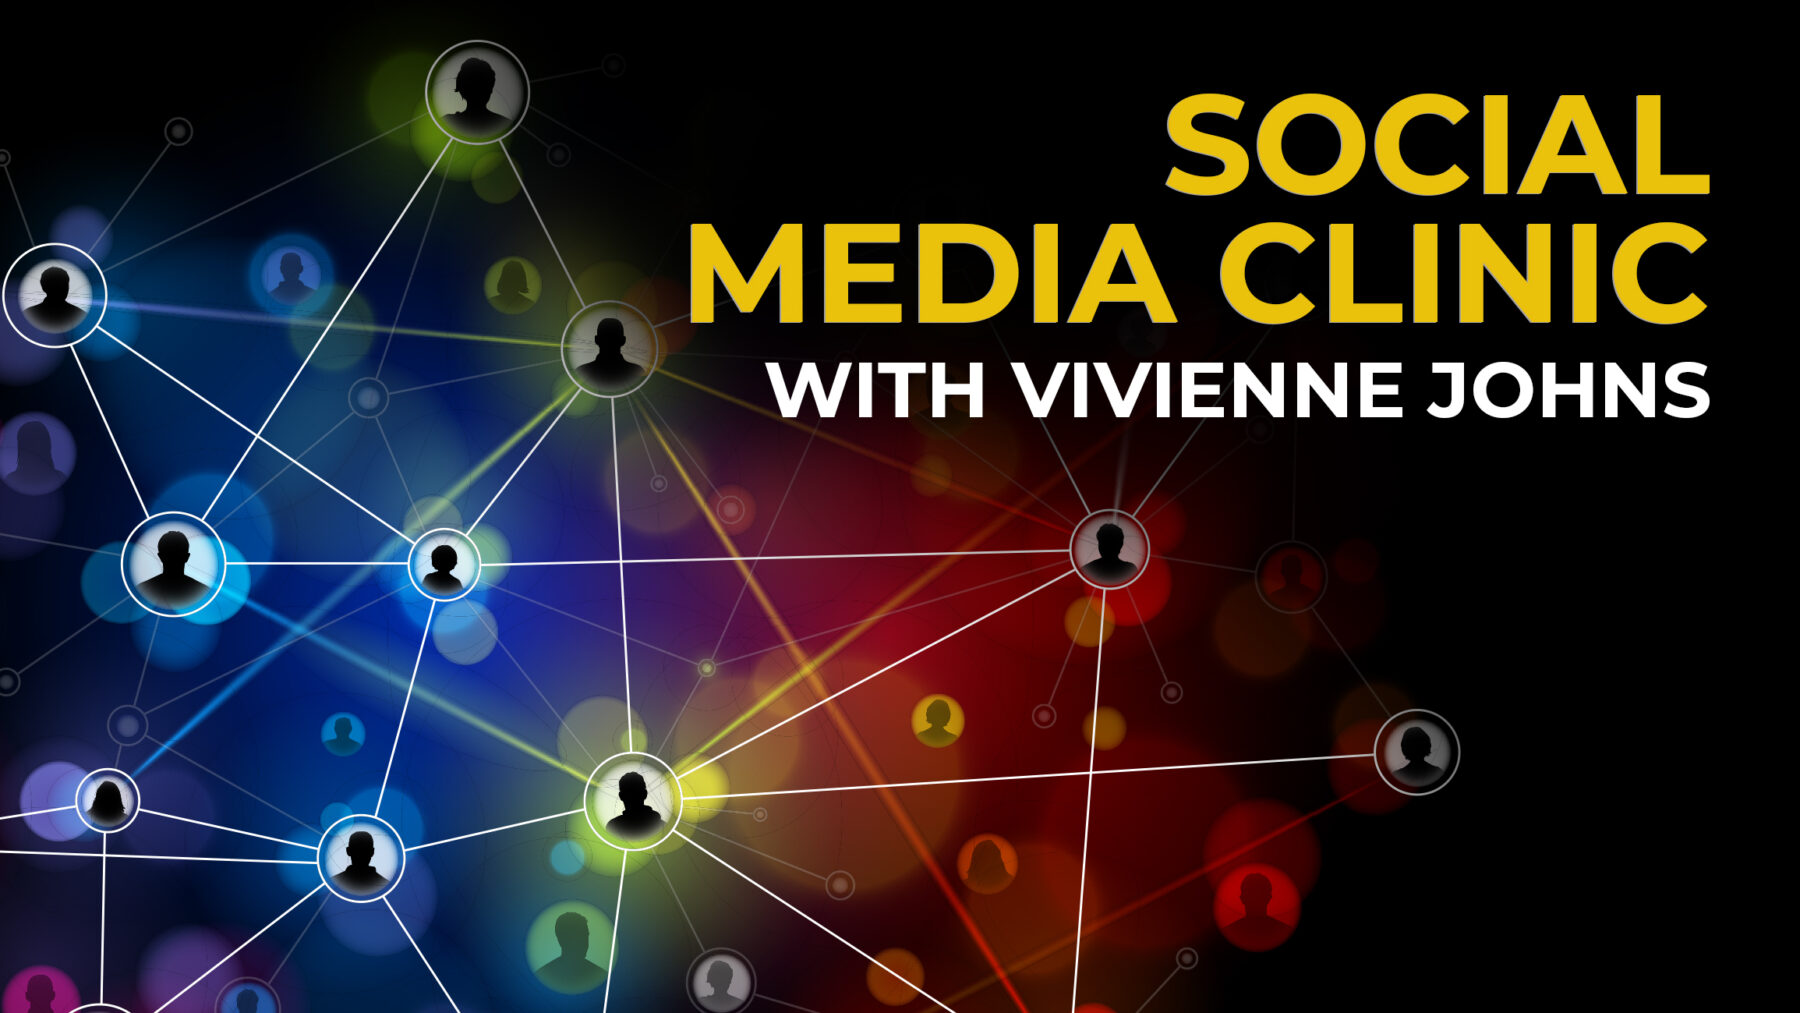 Social Media Clinic with Vivienne Johns